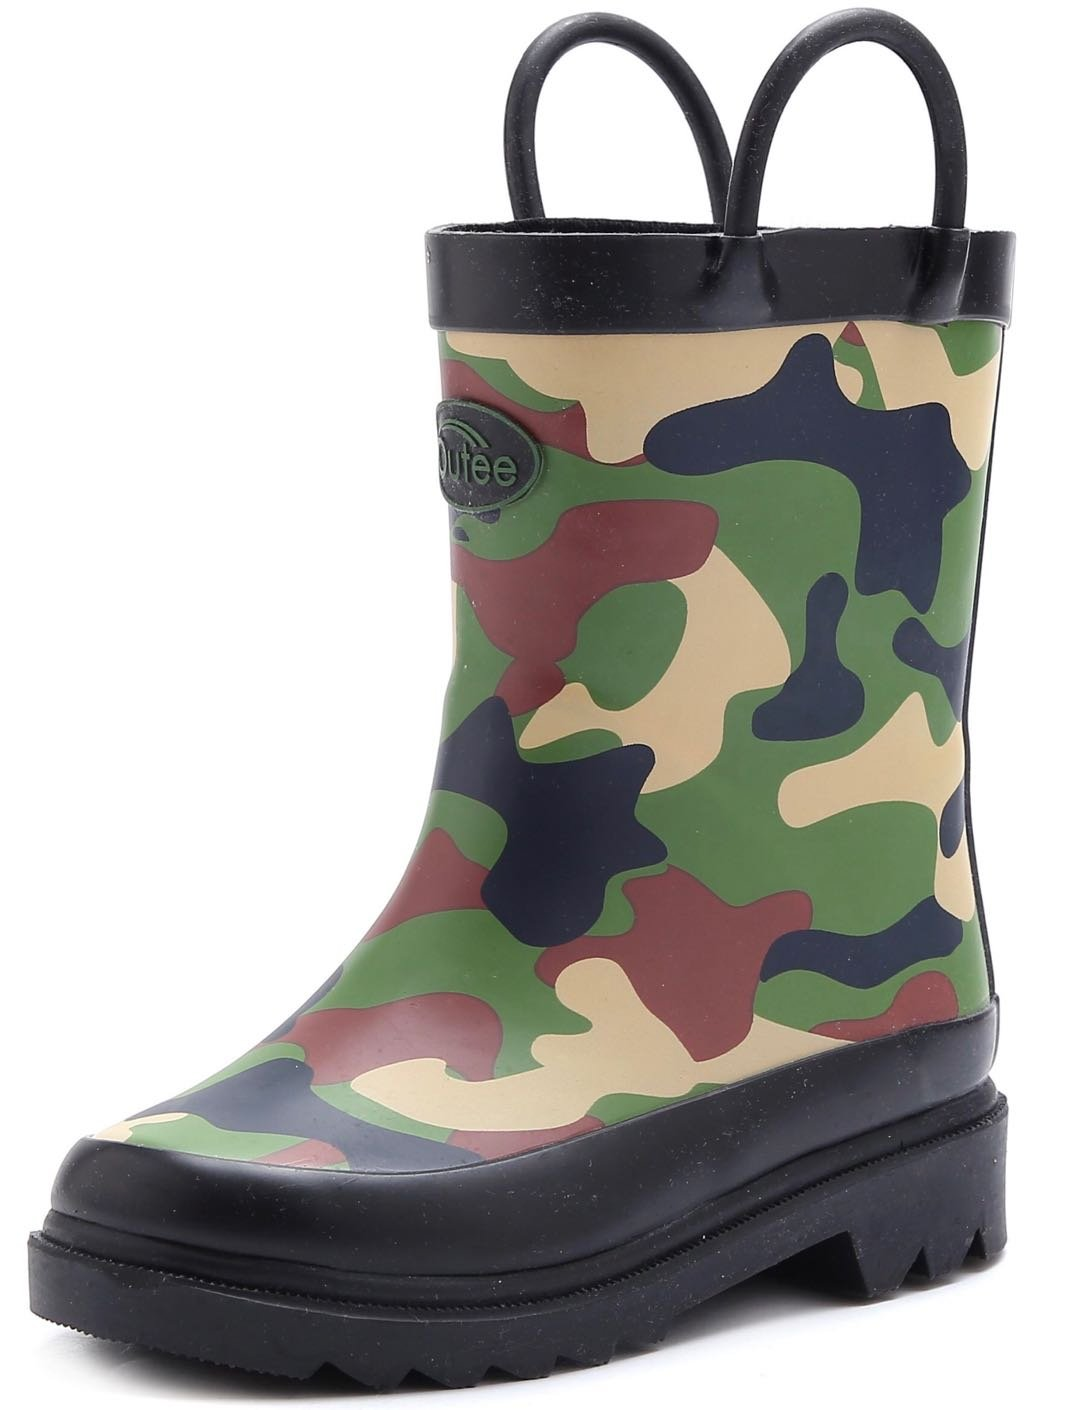 Outee Kids Toddler Boys Camo Rain Boots Rubber Waterproof Shoes Green Cute Print with Easy-On Handles Classic Comfortable Removable Insoles Anti-Slippery Durable Sole with Grip (Size 13)